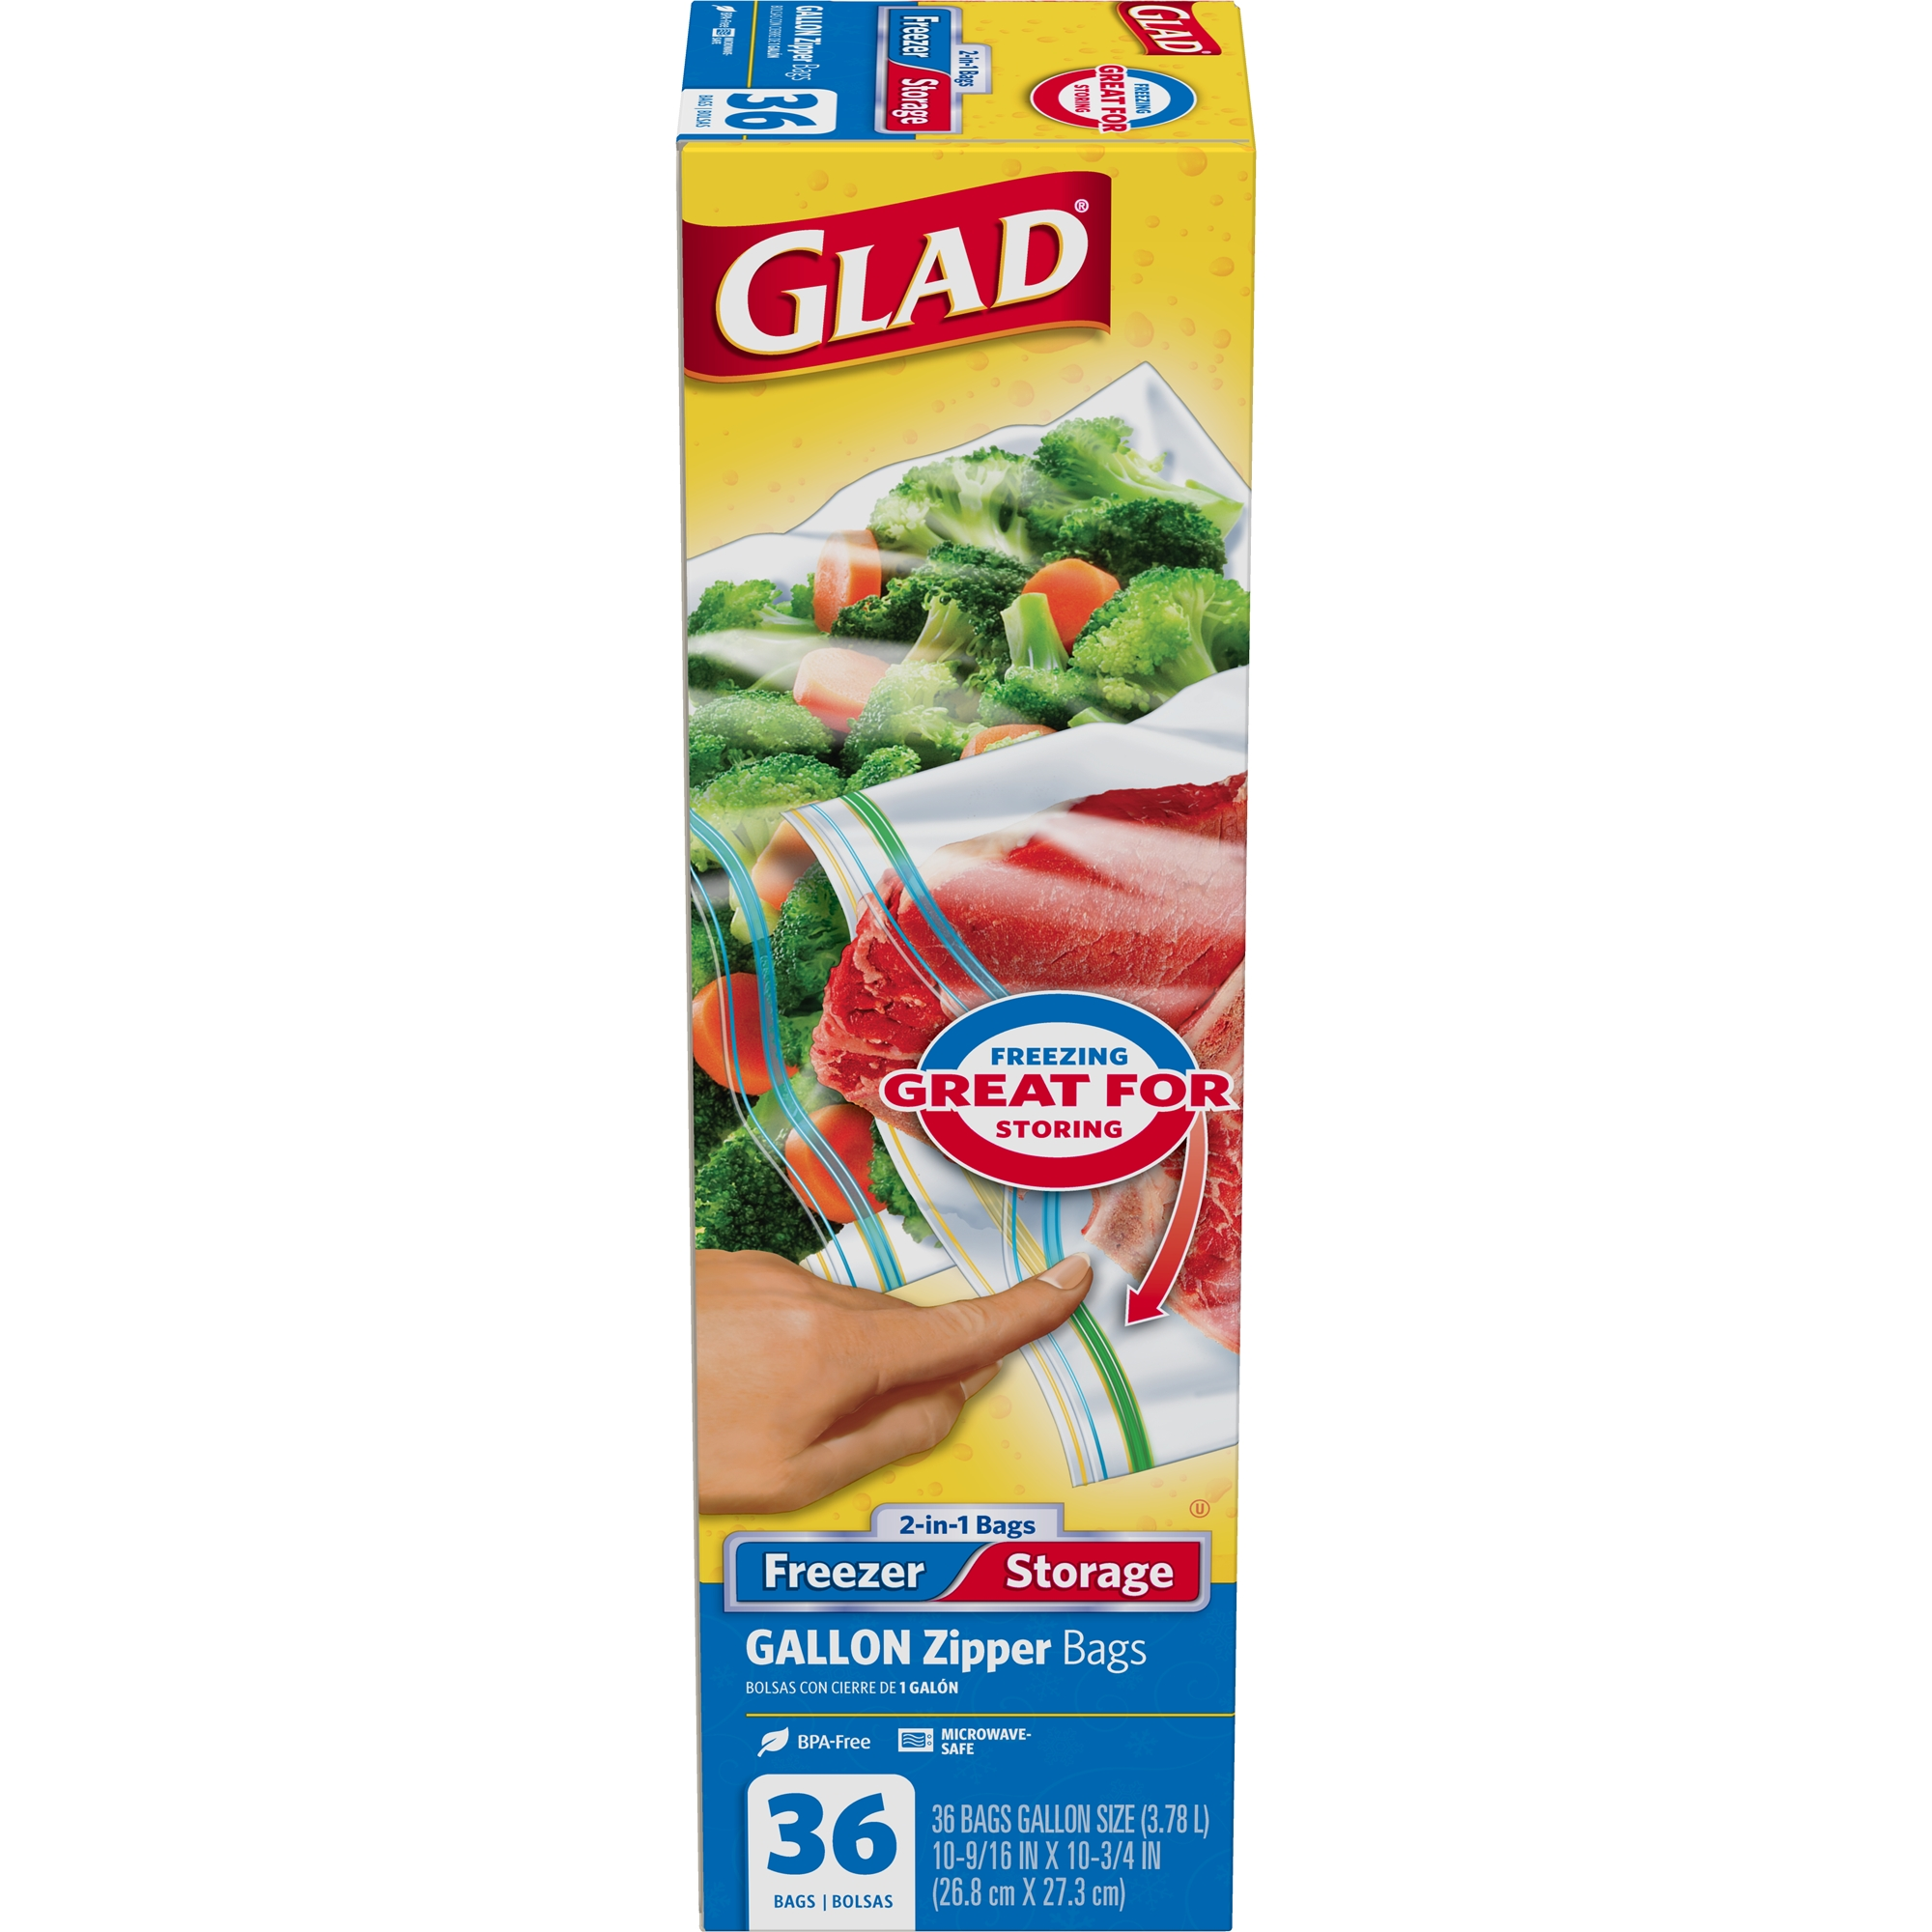 (2 pack) Glad Food Storage and Freezer 2 in 1 Zipper Bags - 1 gal - 36 ct